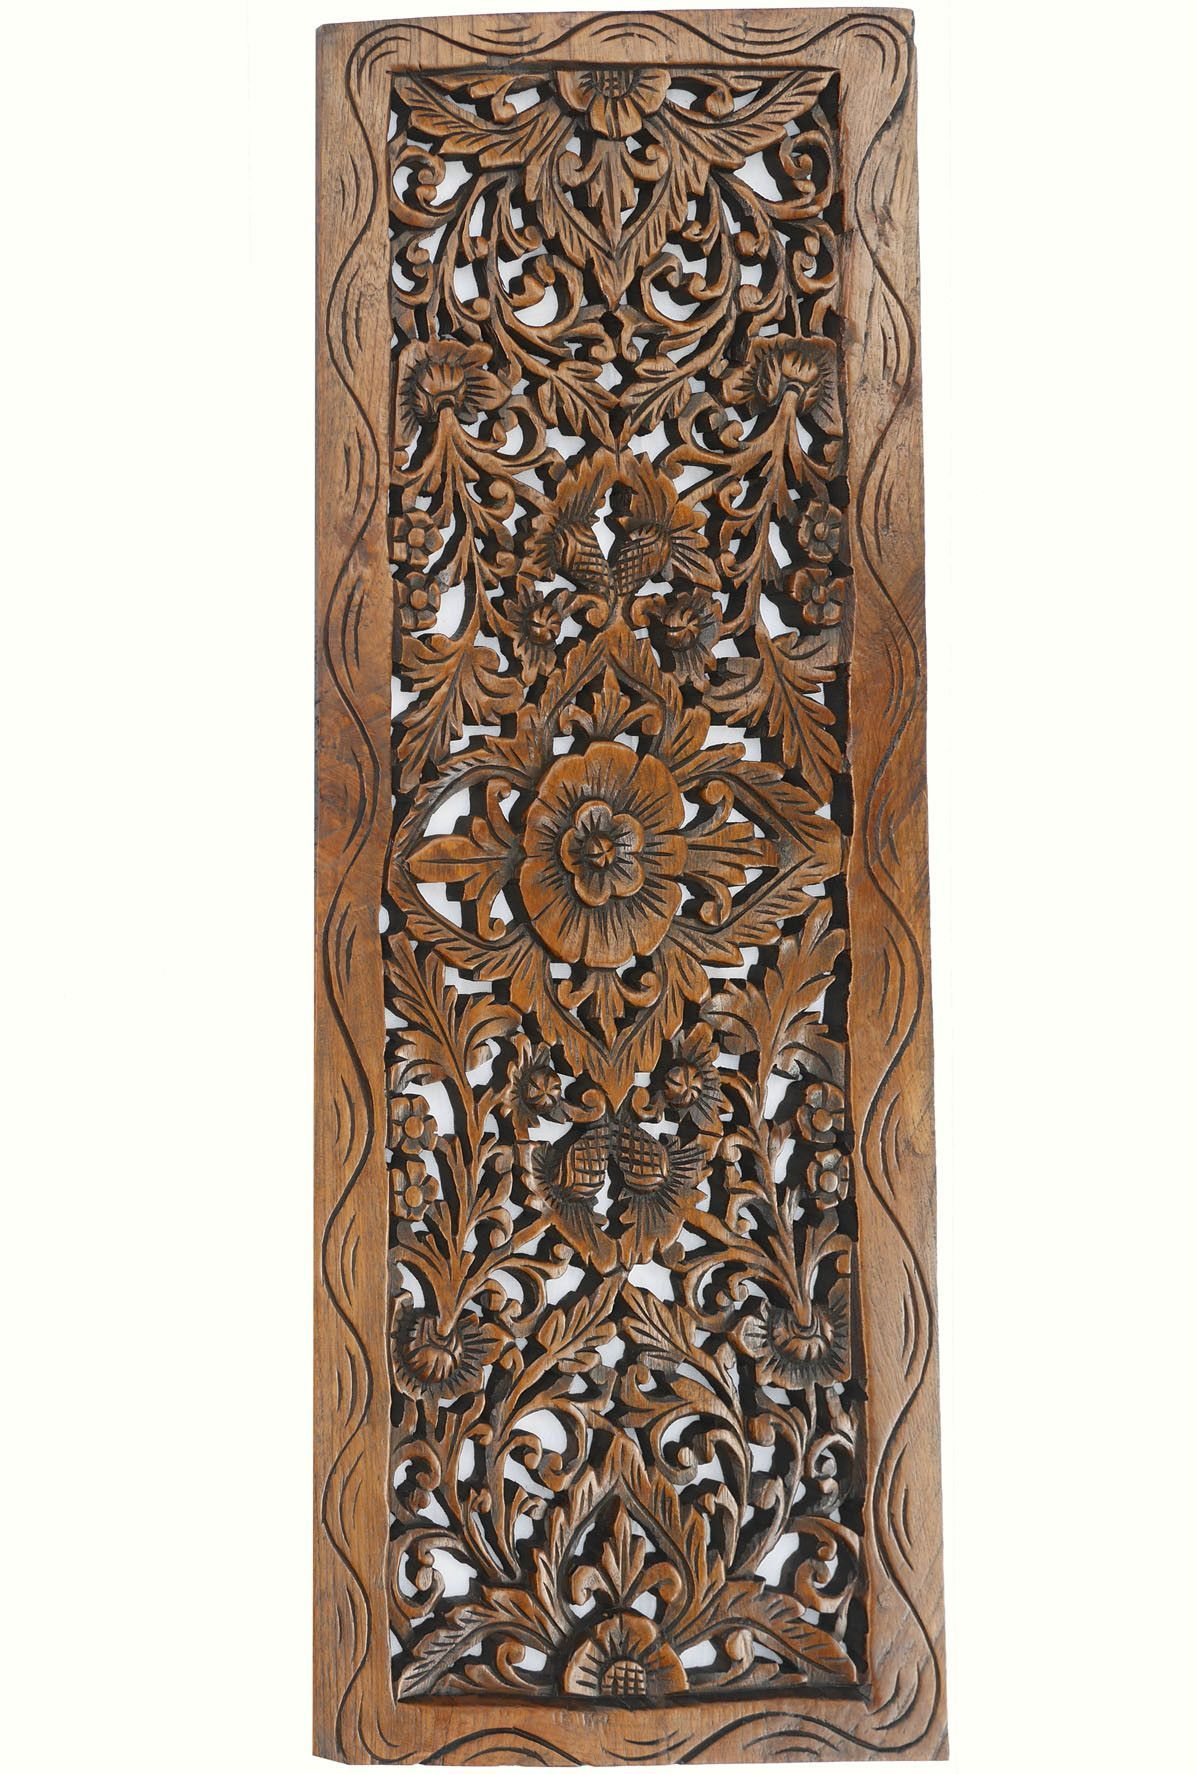 Fl Wood Carved Wall Panel Decorative Thai Relief